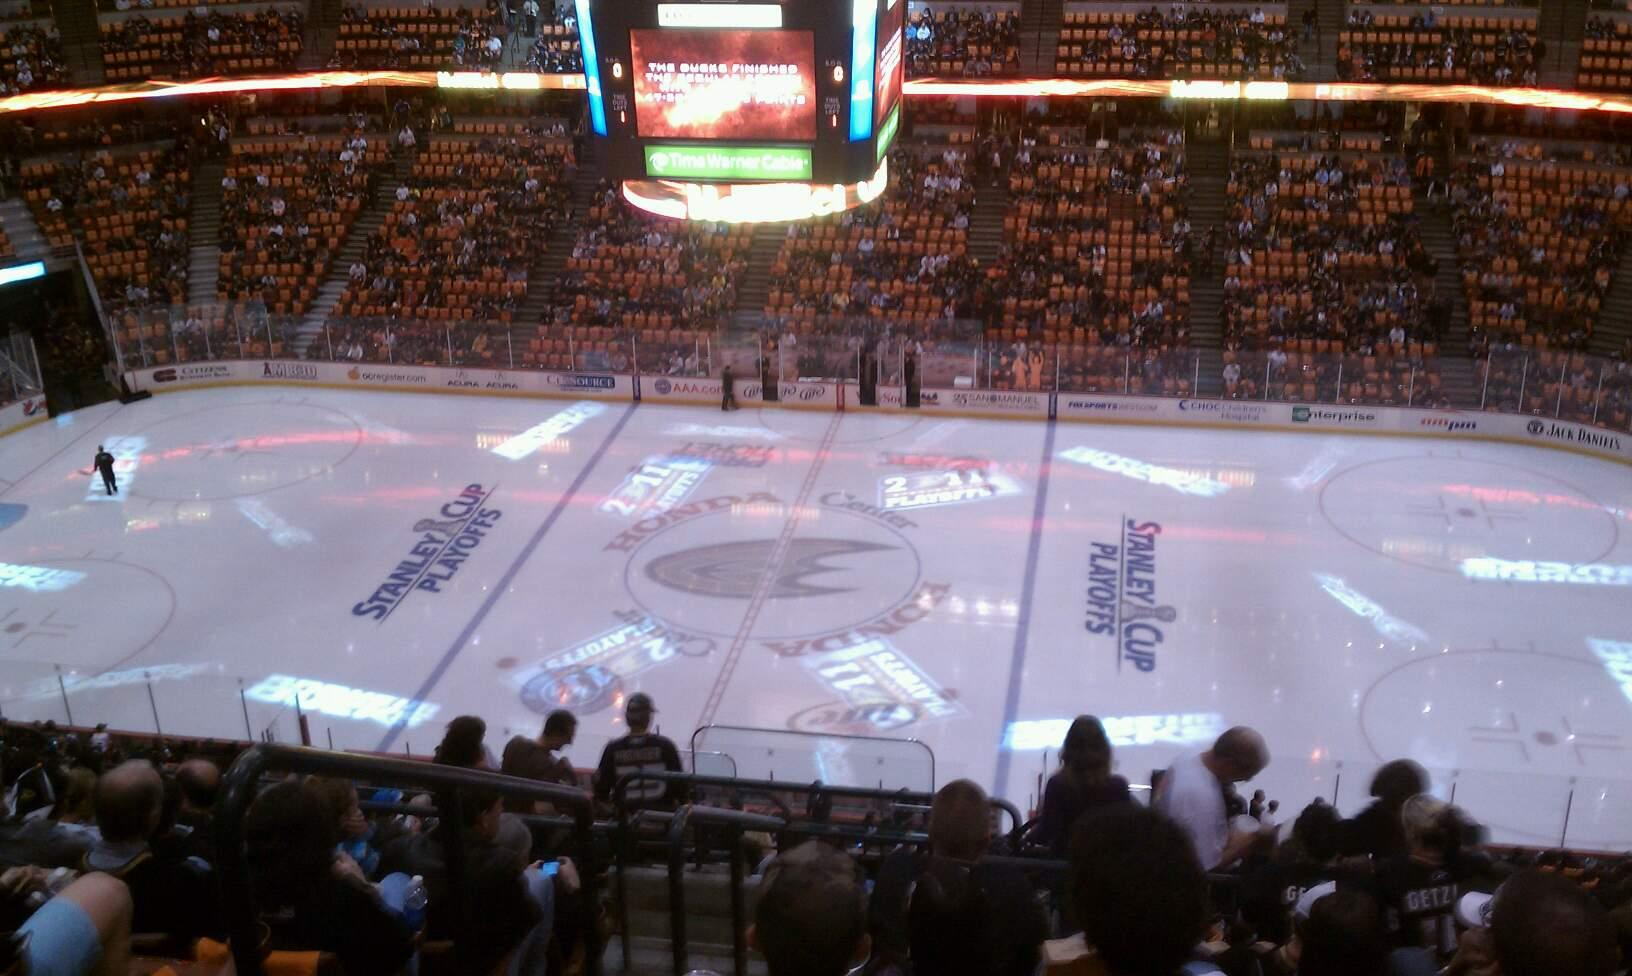 Honda Center Section 410 Row R Seat 14